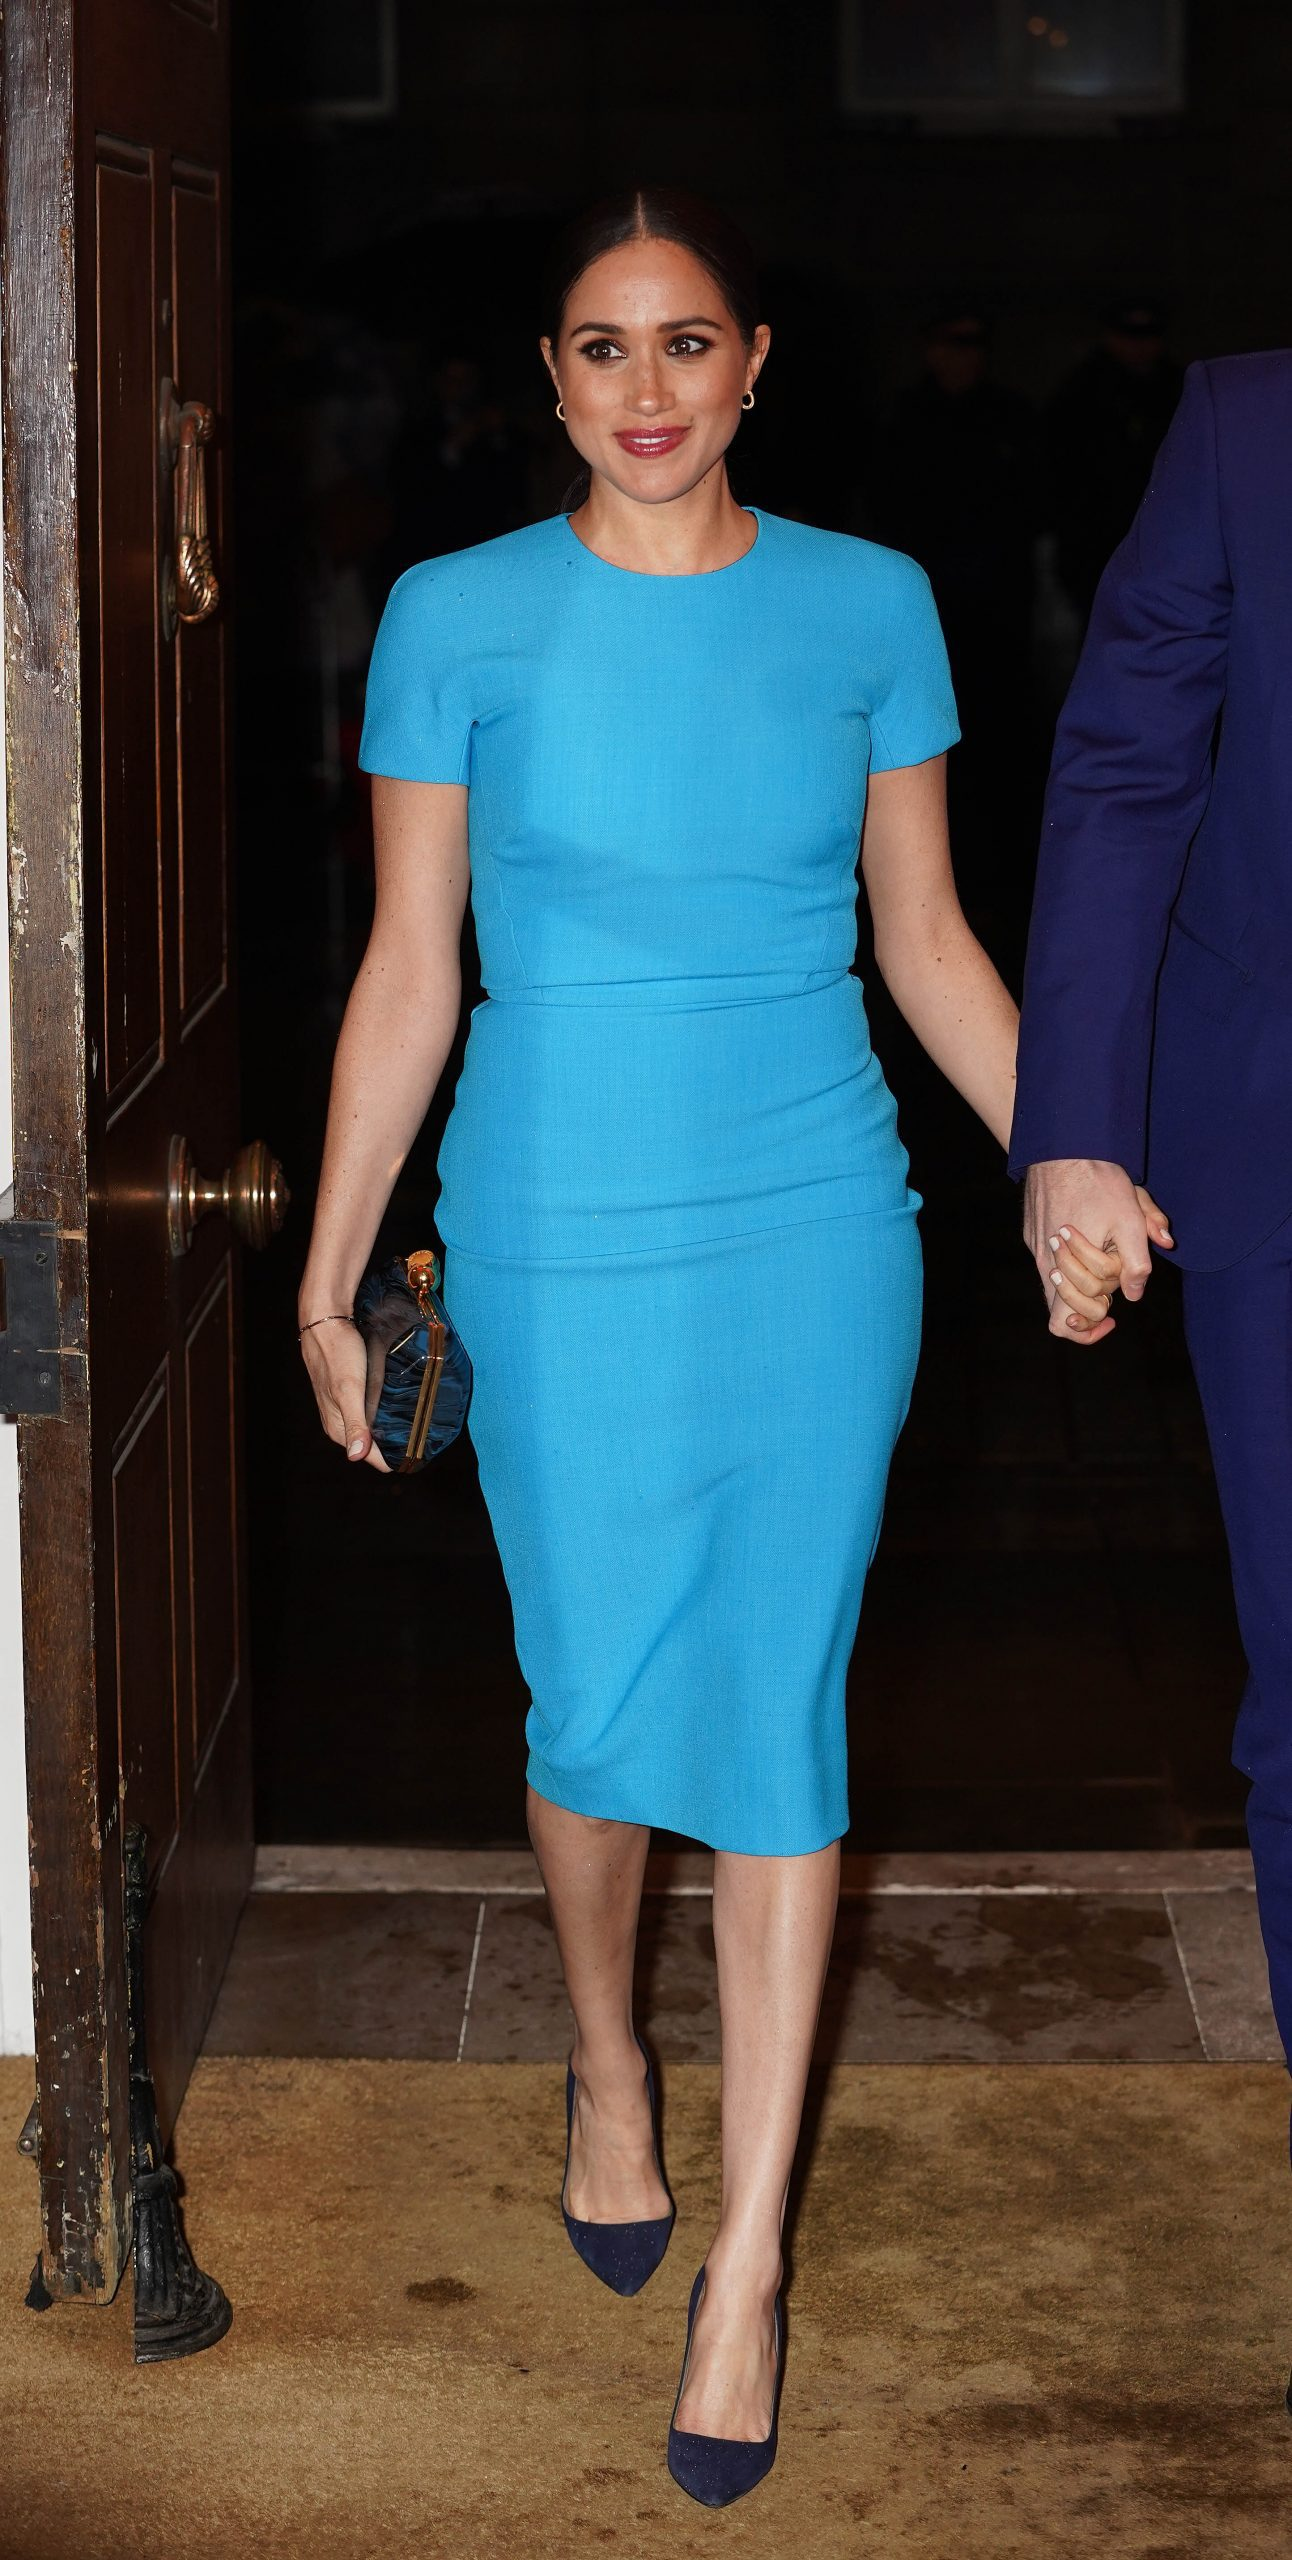 The Duke and Duchess of Sussex attends the Endeavour Fund Awards.